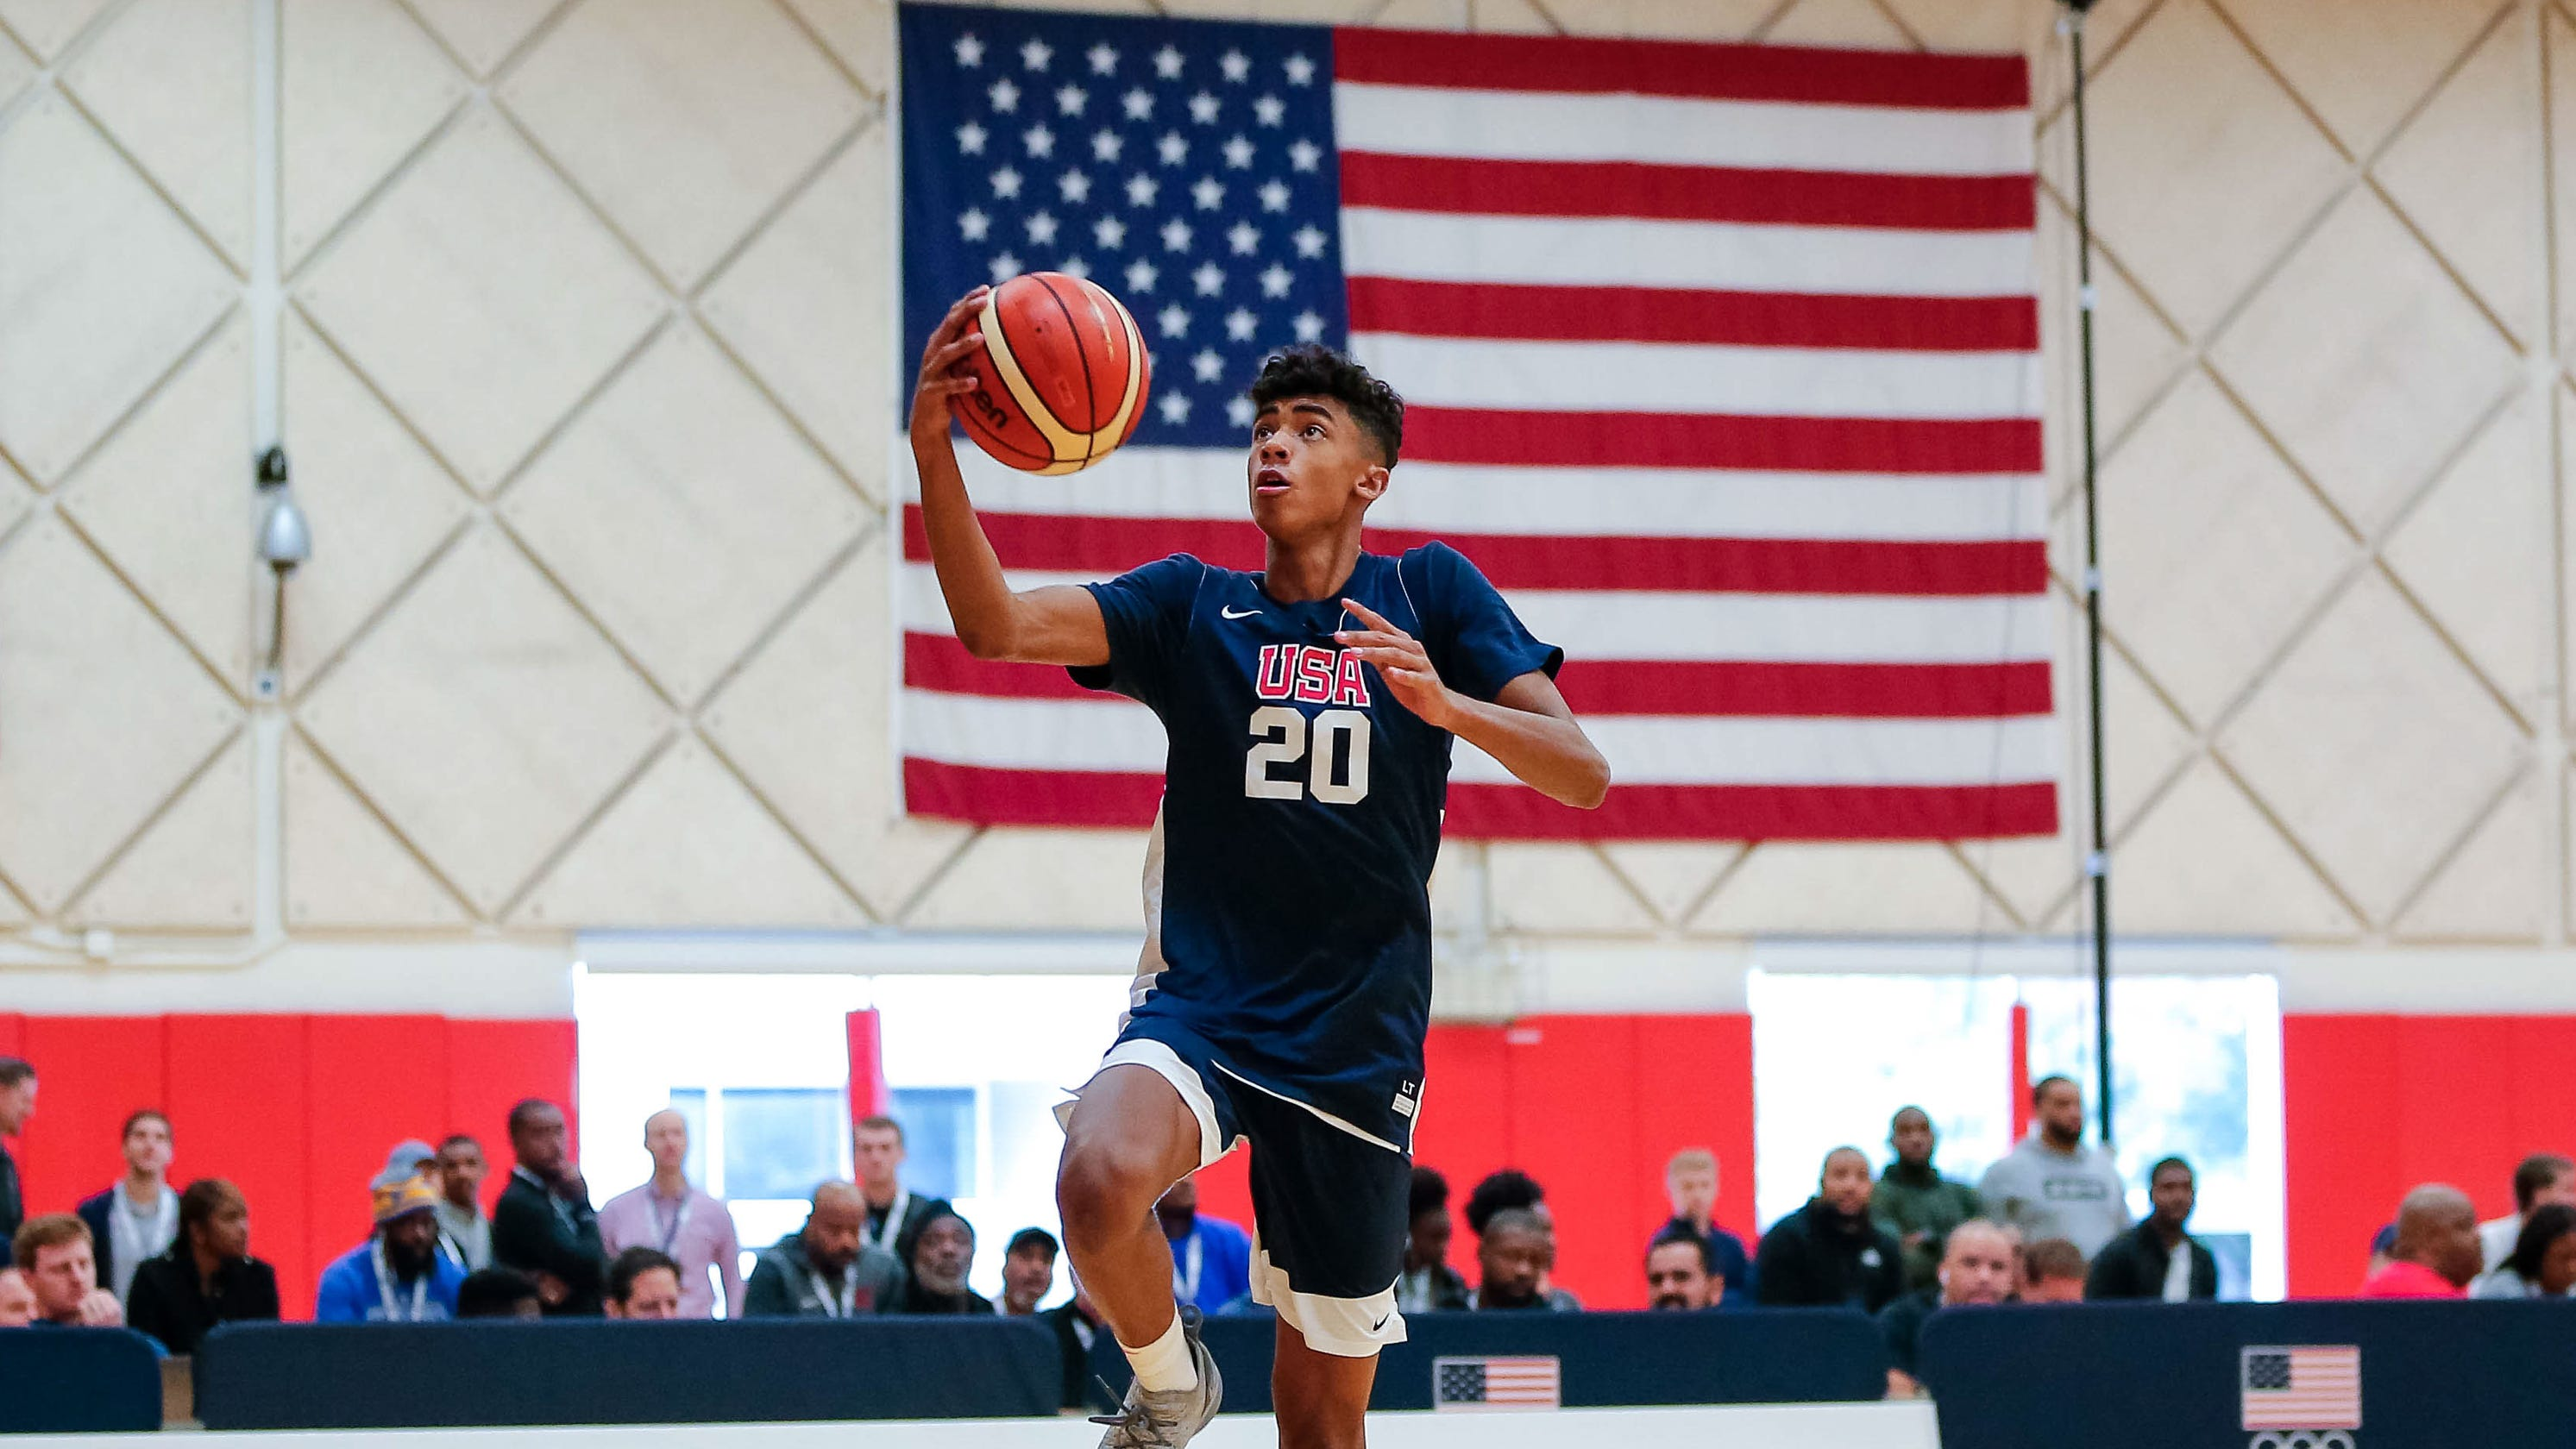 Michigan State basketball lands 5-star guard Max Christie for 2021 recruiting class